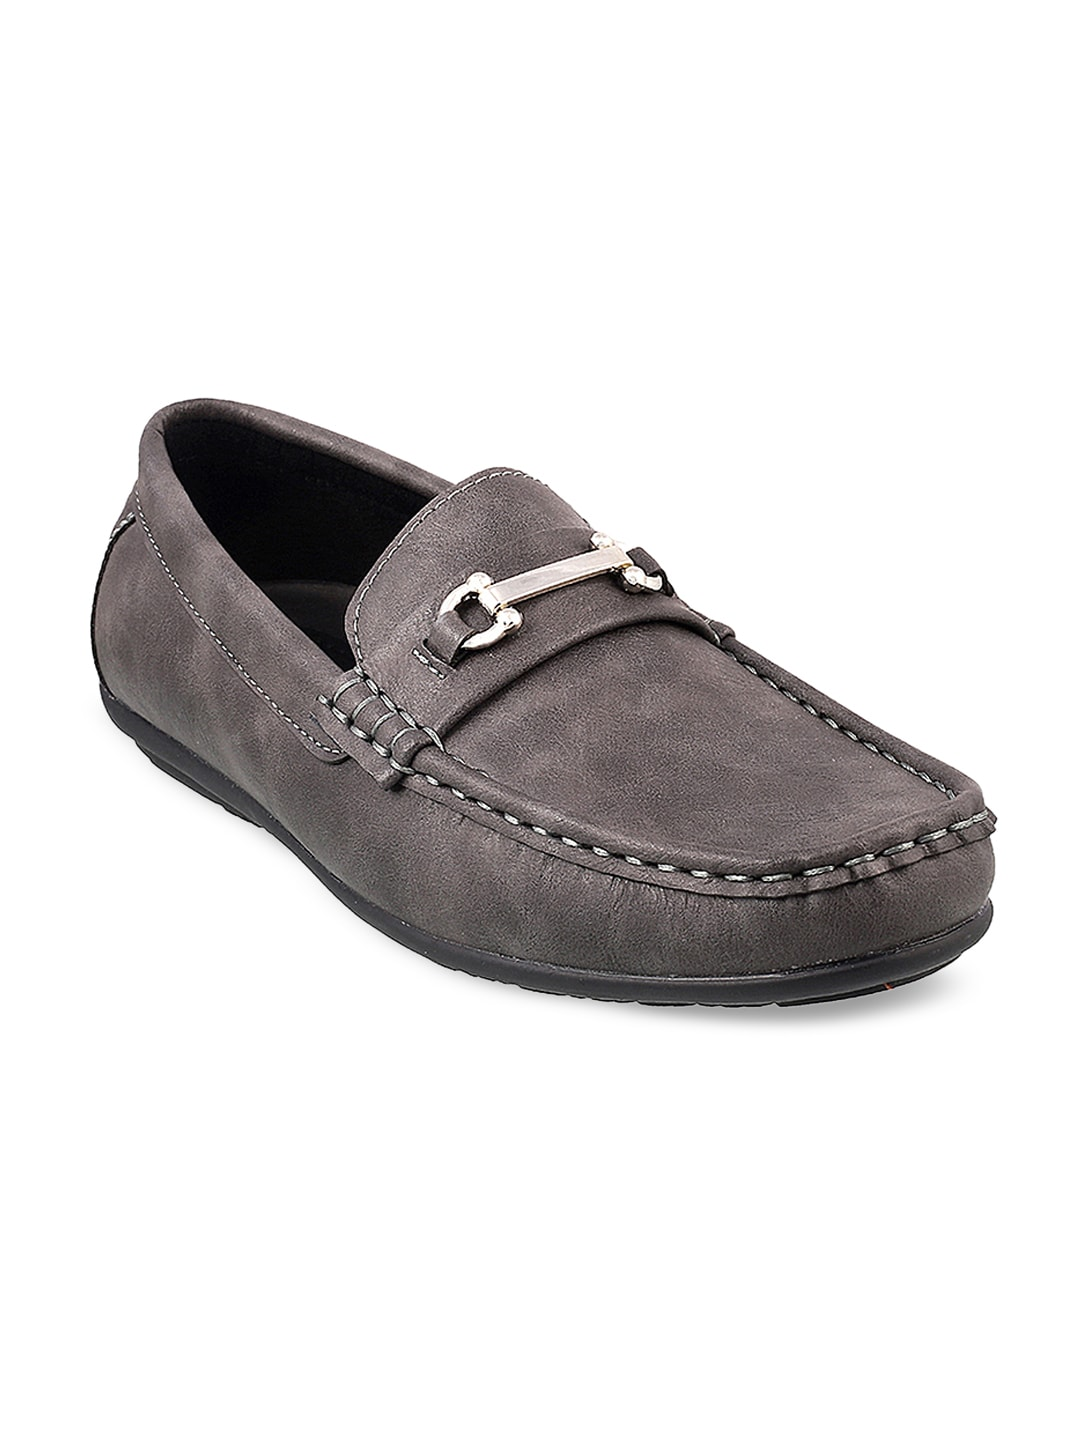 Wide Shoes - Buy Wide Shoes online in India ff3003a45